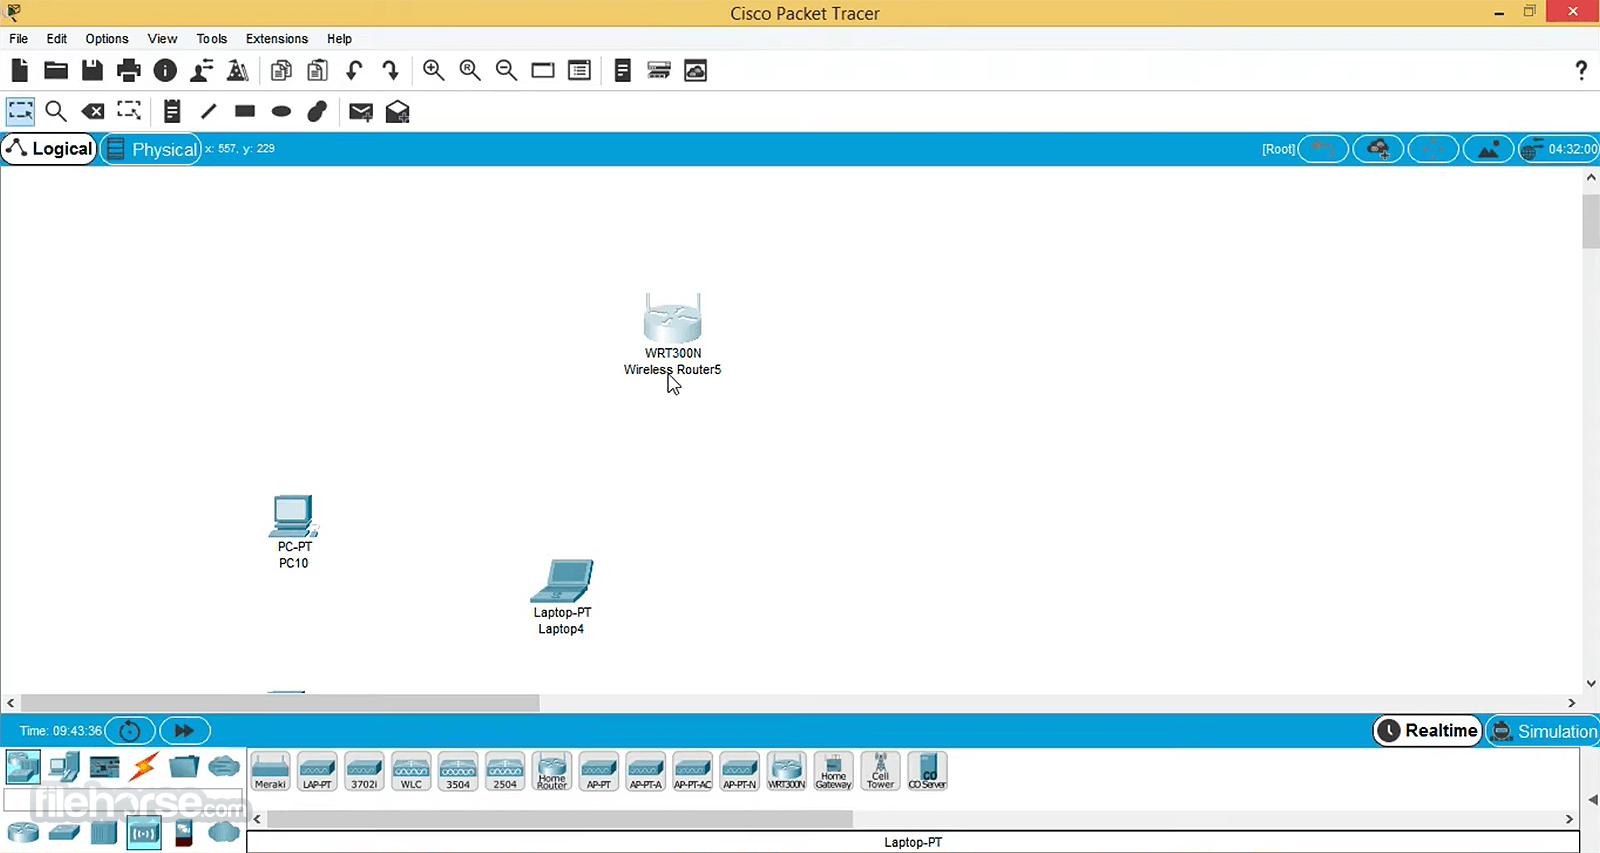 7.1 01NET PACKET TRACER TÉLÉCHARGER